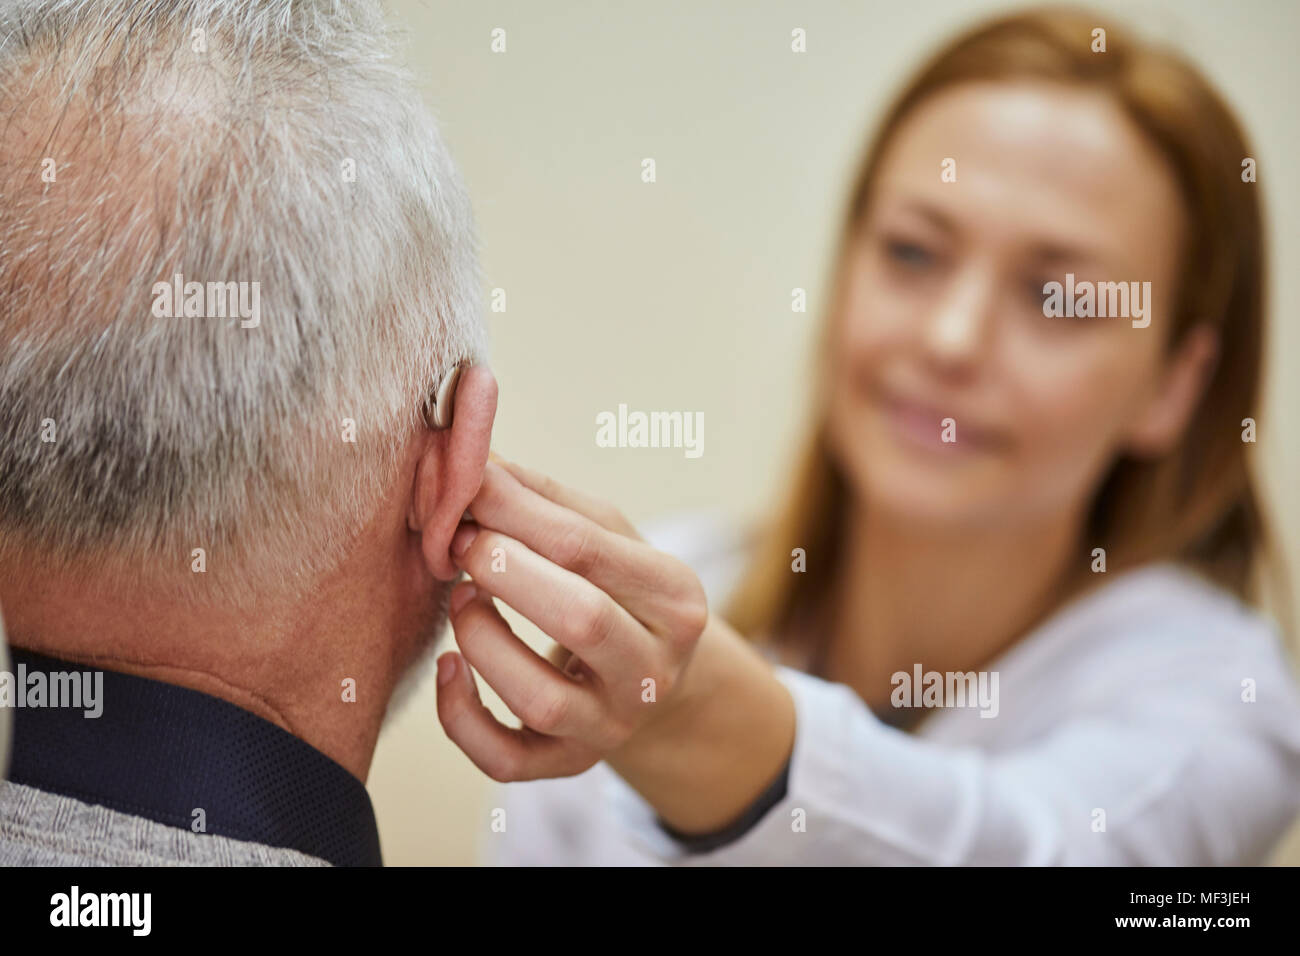 Female doctor applying hearing aid to senior man's ear Stock Photo